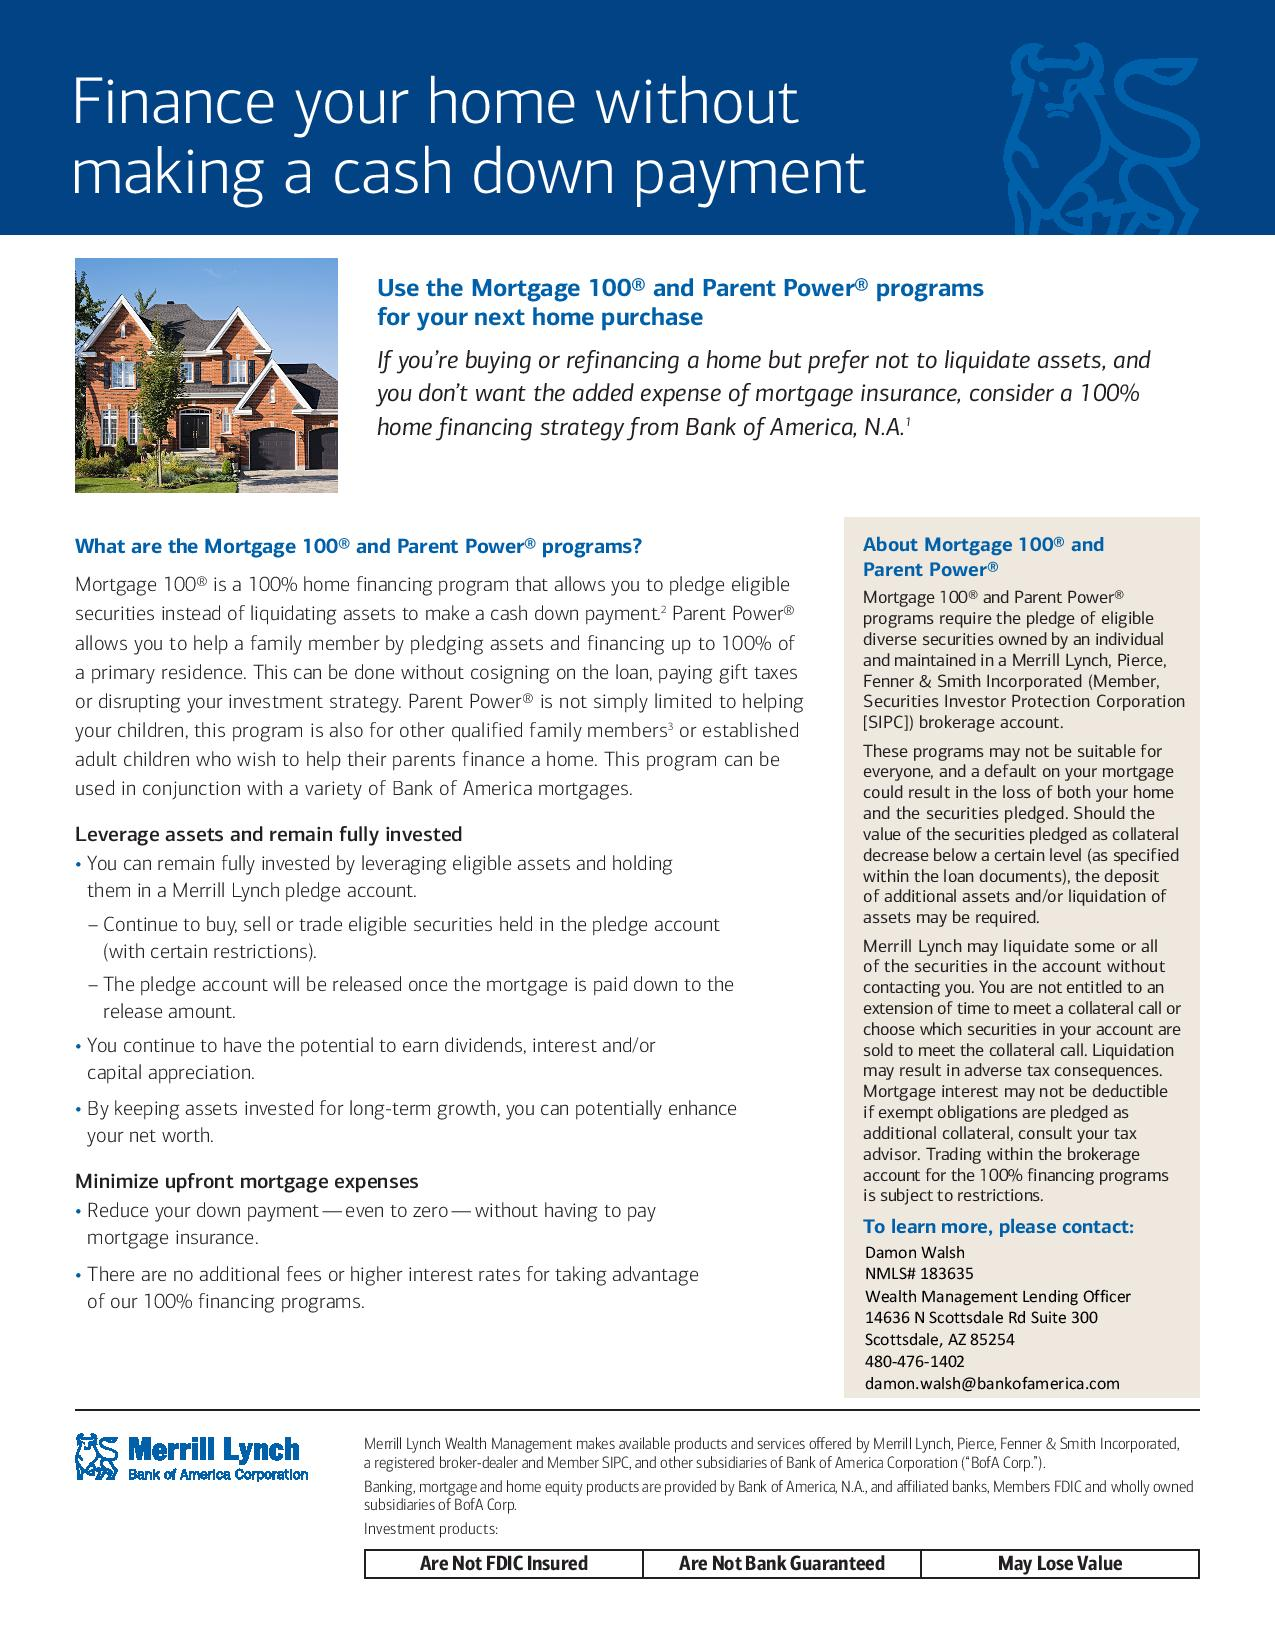 Pledging a portion of your invest portfolio as collateral for 100% home purchase loan - page 1